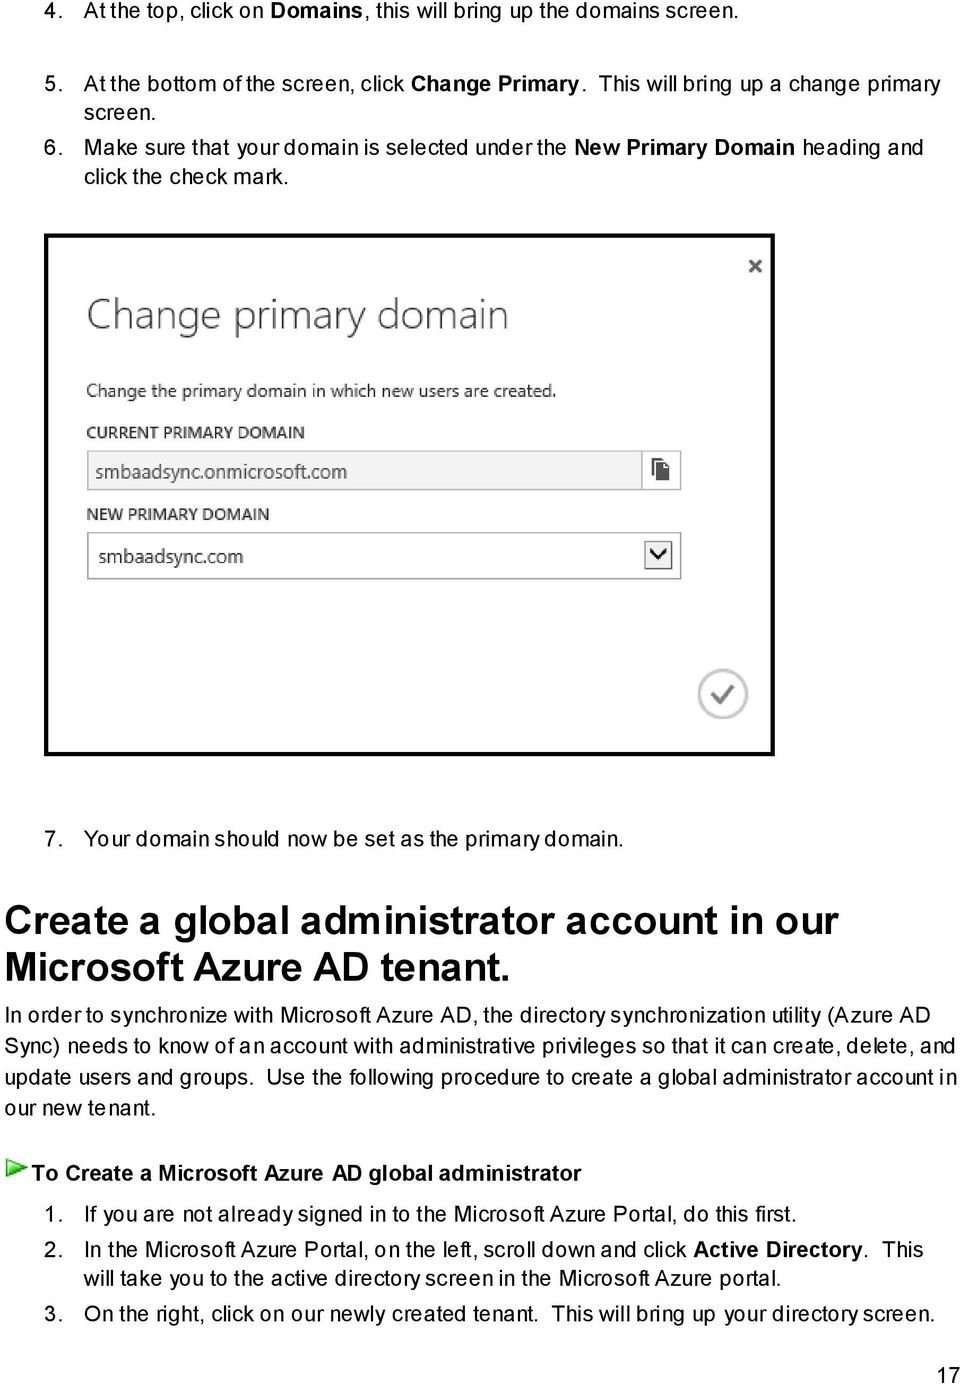 Create a global administrator account in our Microsoft Azure AD tenant.